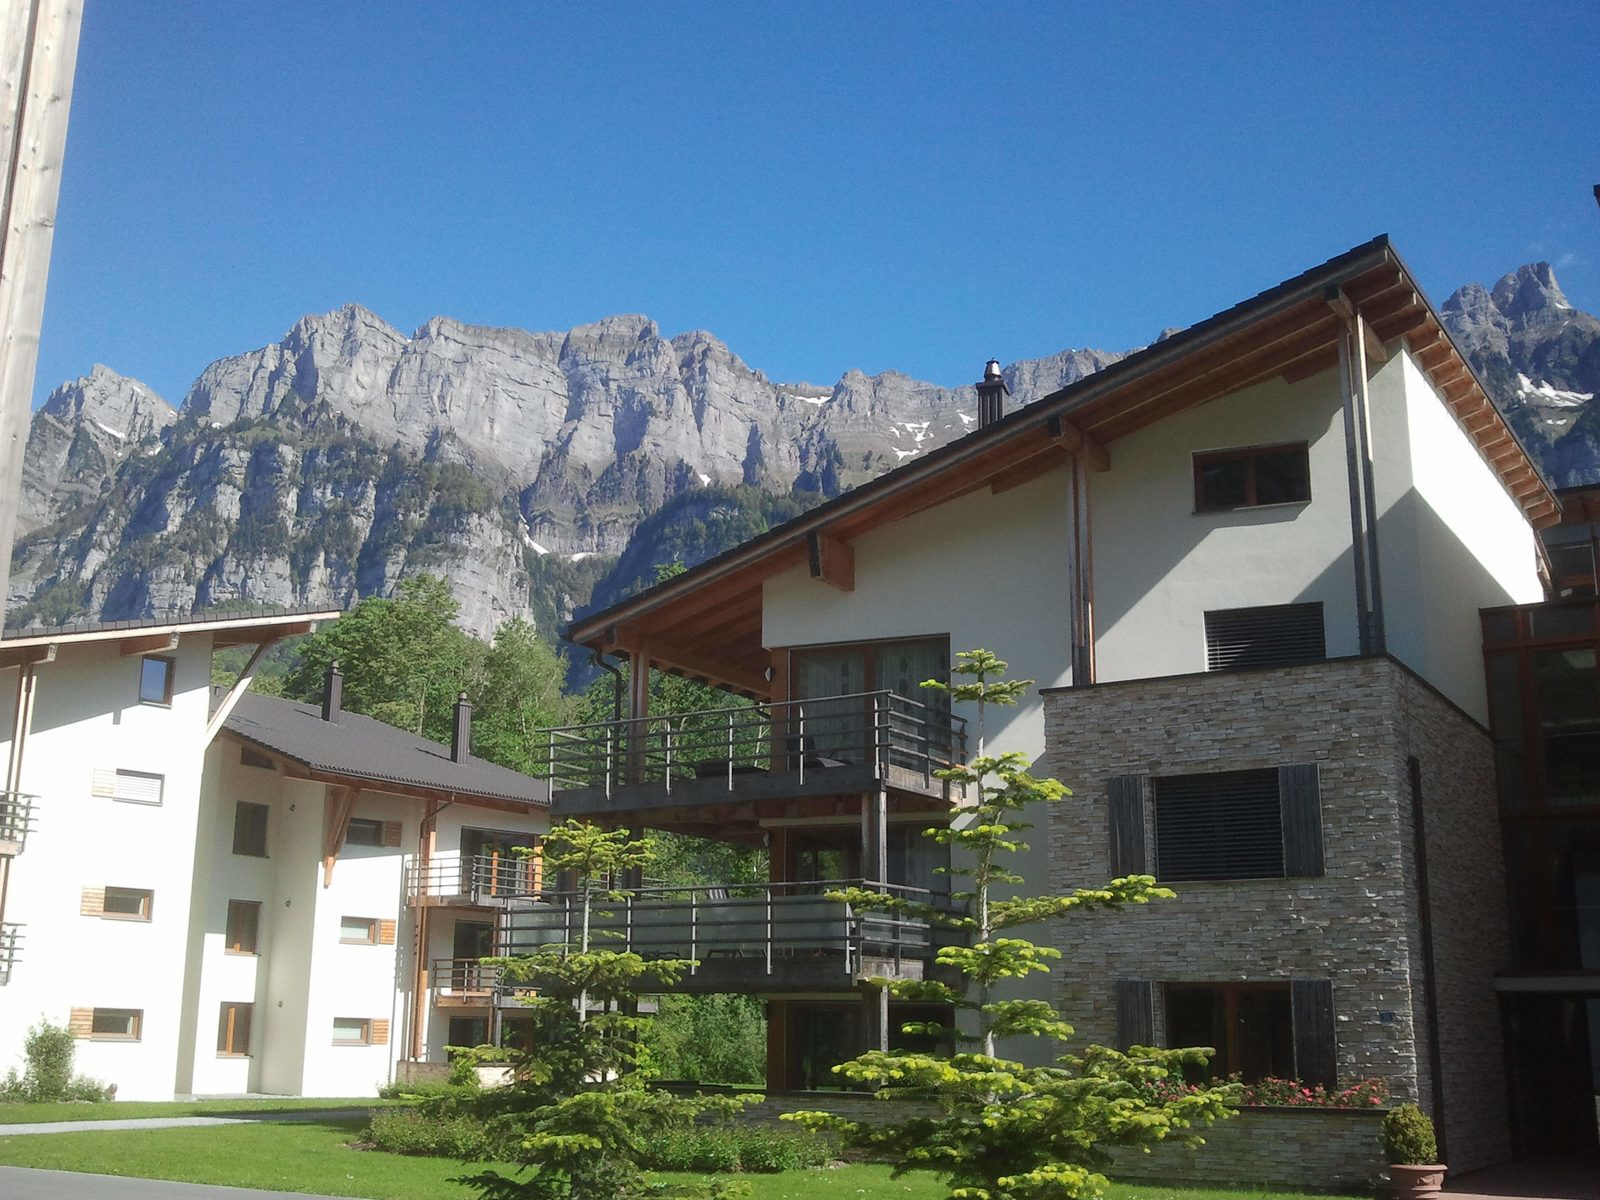 Apartments on Resort Walensee Heidiland Flumserberg Switzerland with view over the Churfirsten, during the May holiday